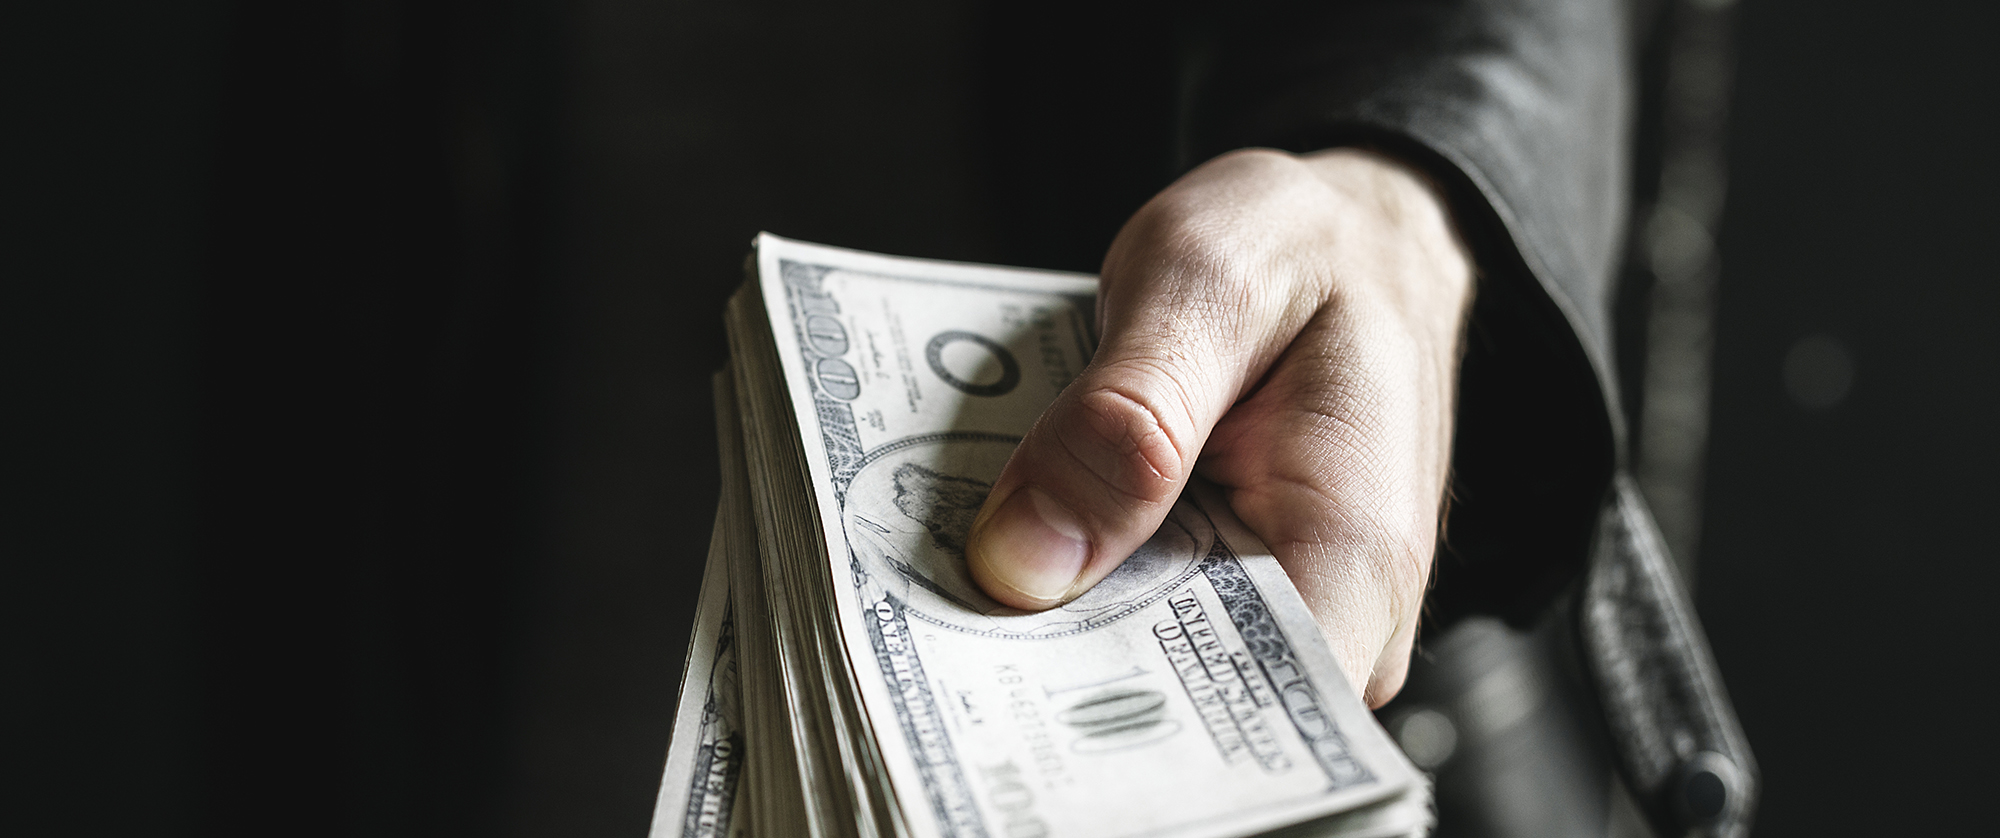 IRS Refunds for New Employers 2020/2021